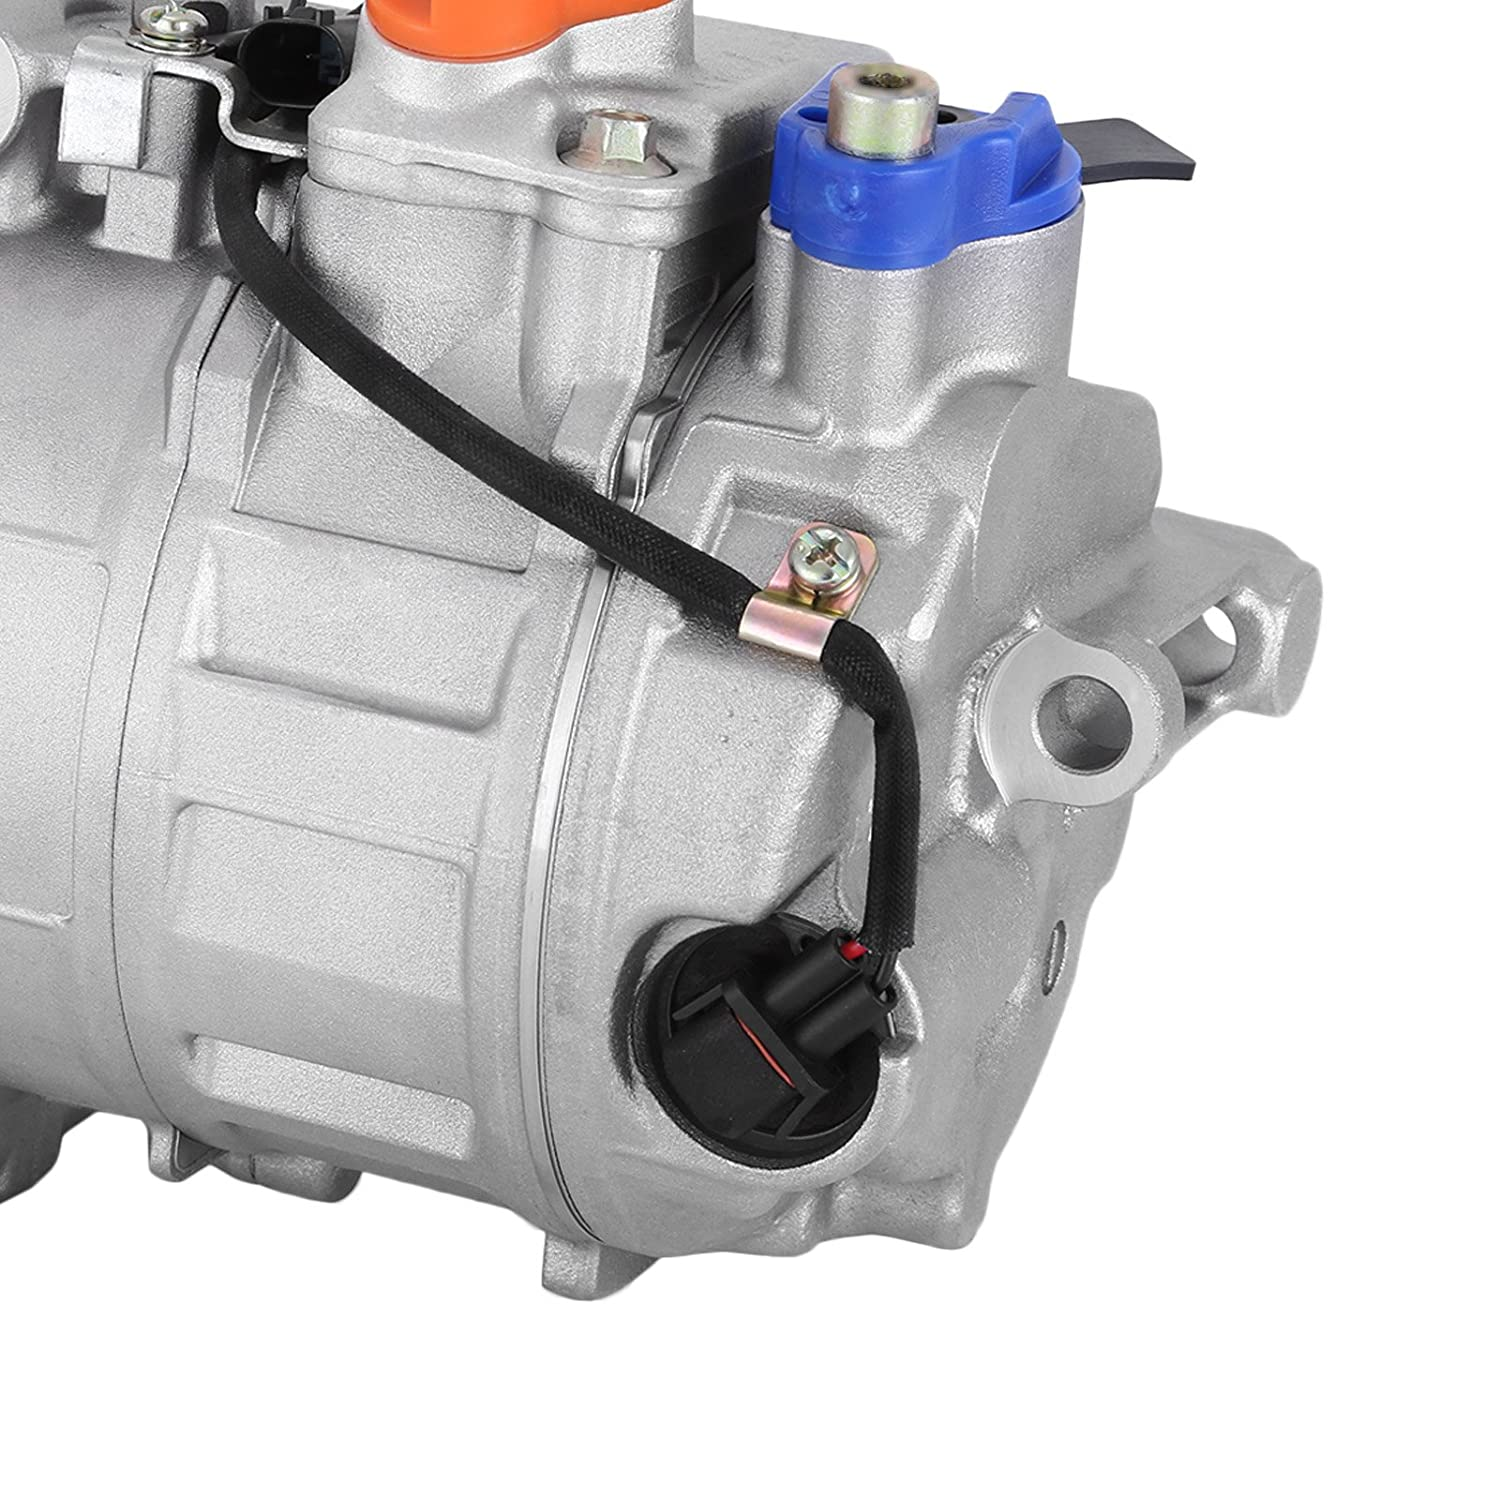 000230011 Universal Air Conditioner A//C Compressor for 06-11 Mercedes R350 03-06 S430//S500 0022301211 7SEU17C 98356 97356 Happybuy CO 10807JC